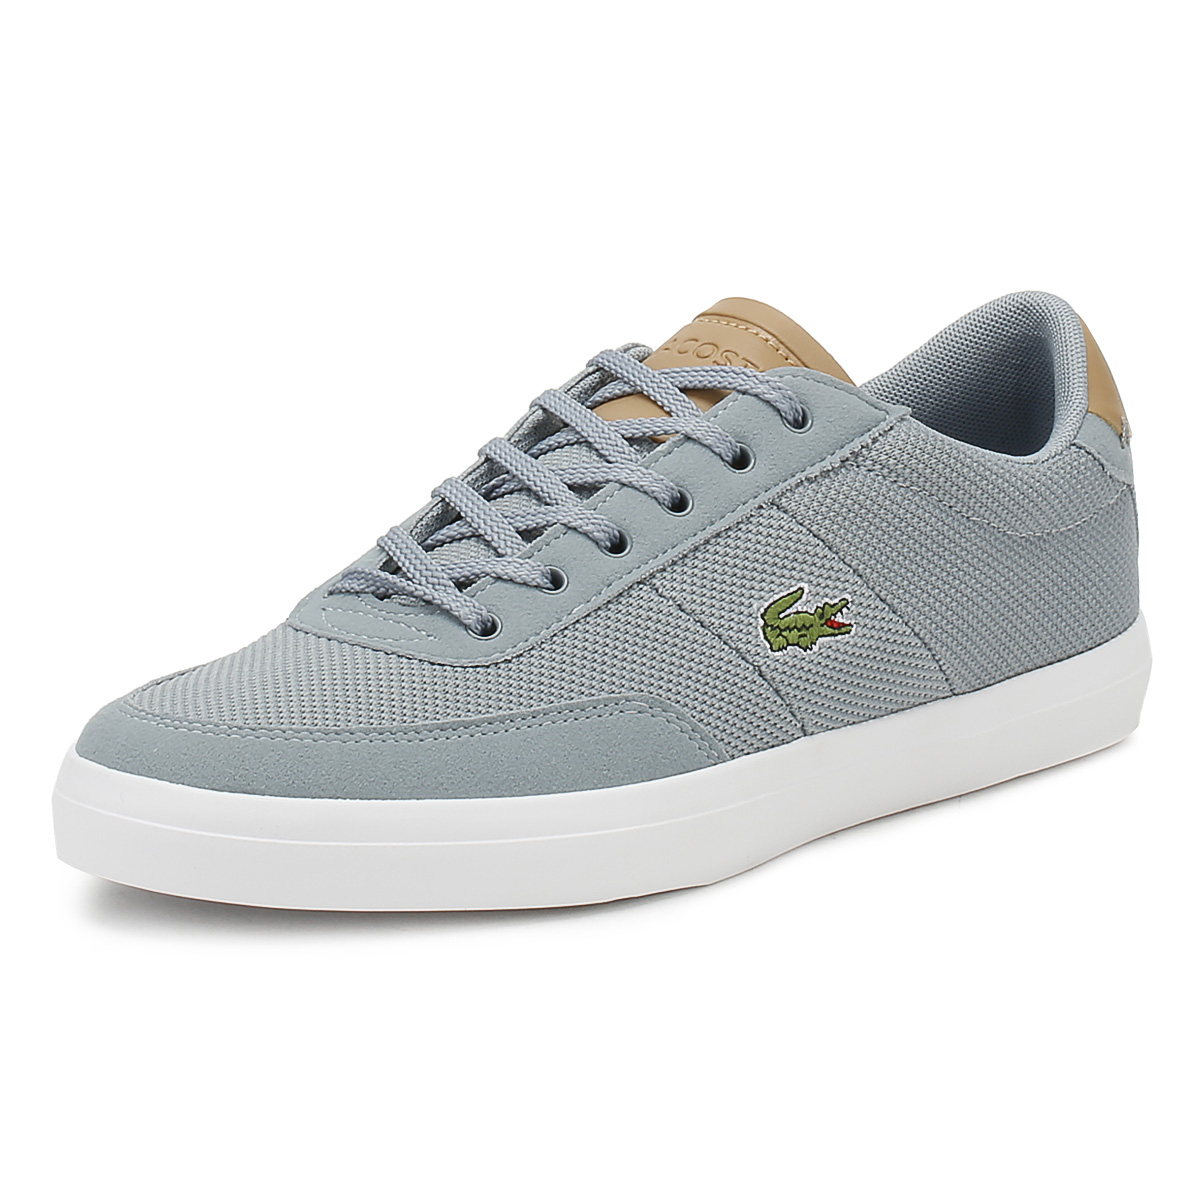 e1032eb4cce470 Details about Lacoste Mens Trainers Grey   Light Tan Court Master 118 1  Lace Up Casual Shoes